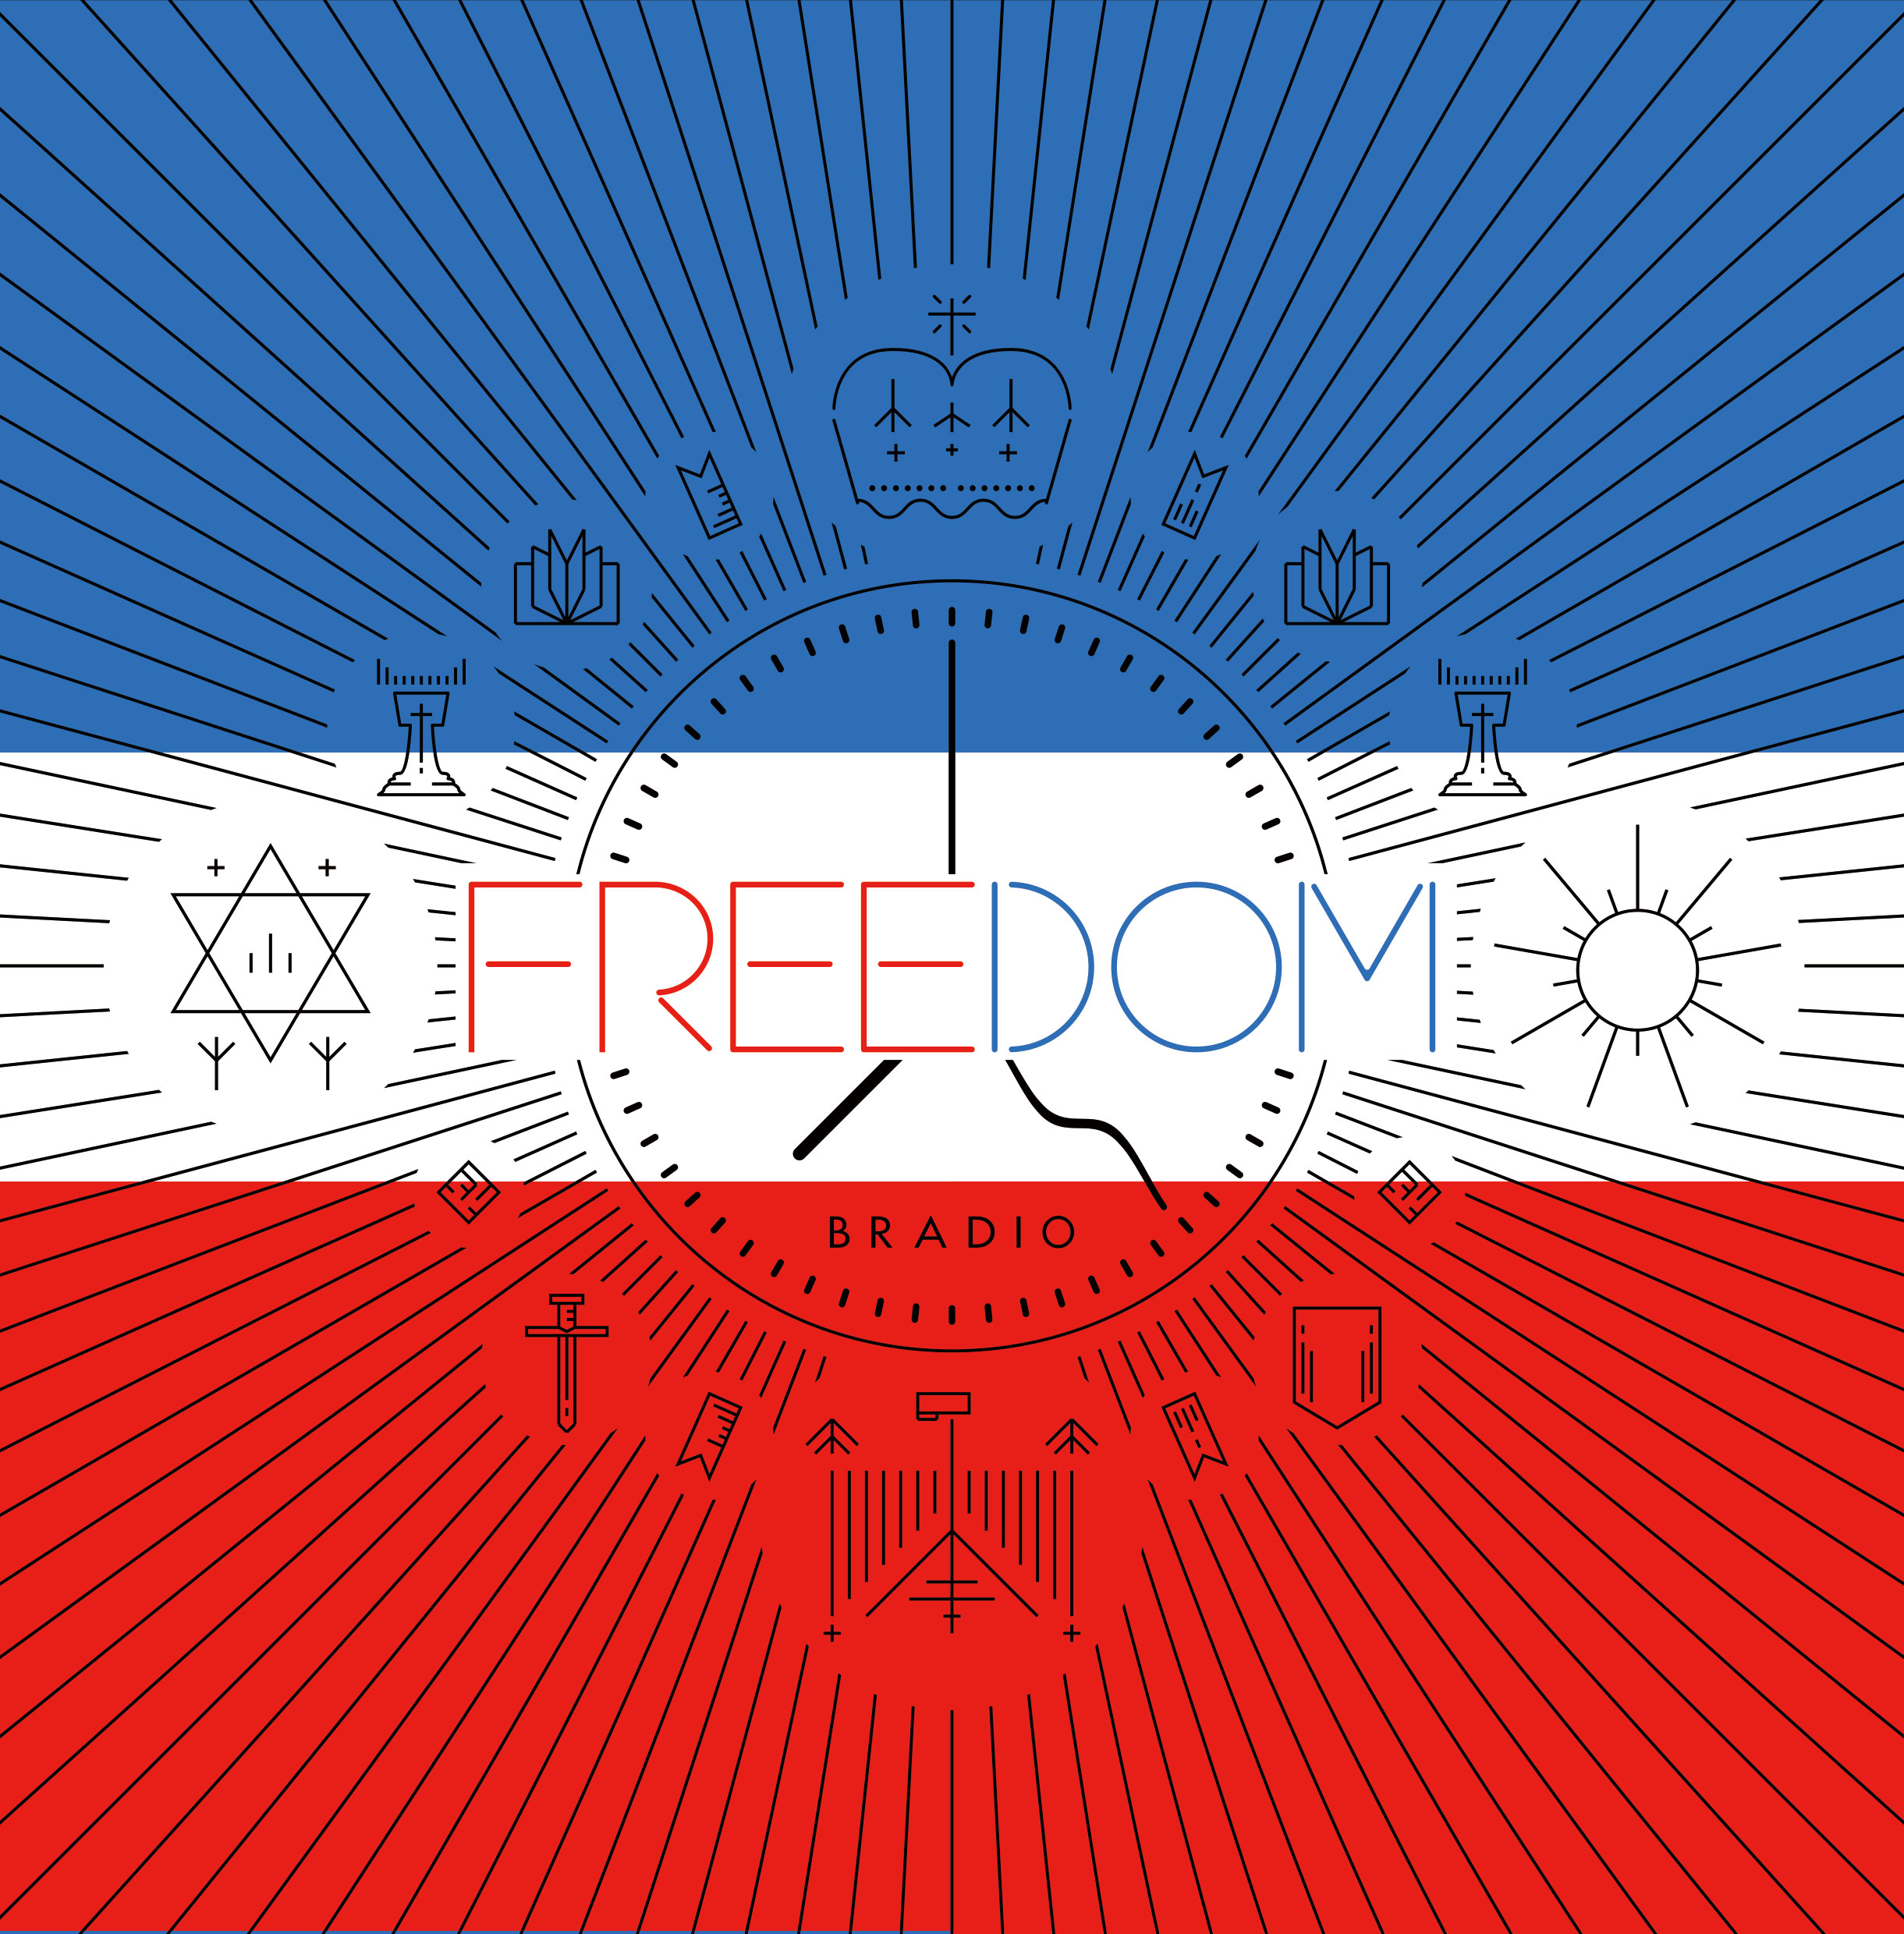 2nd full album FREEDOM(通常盤)